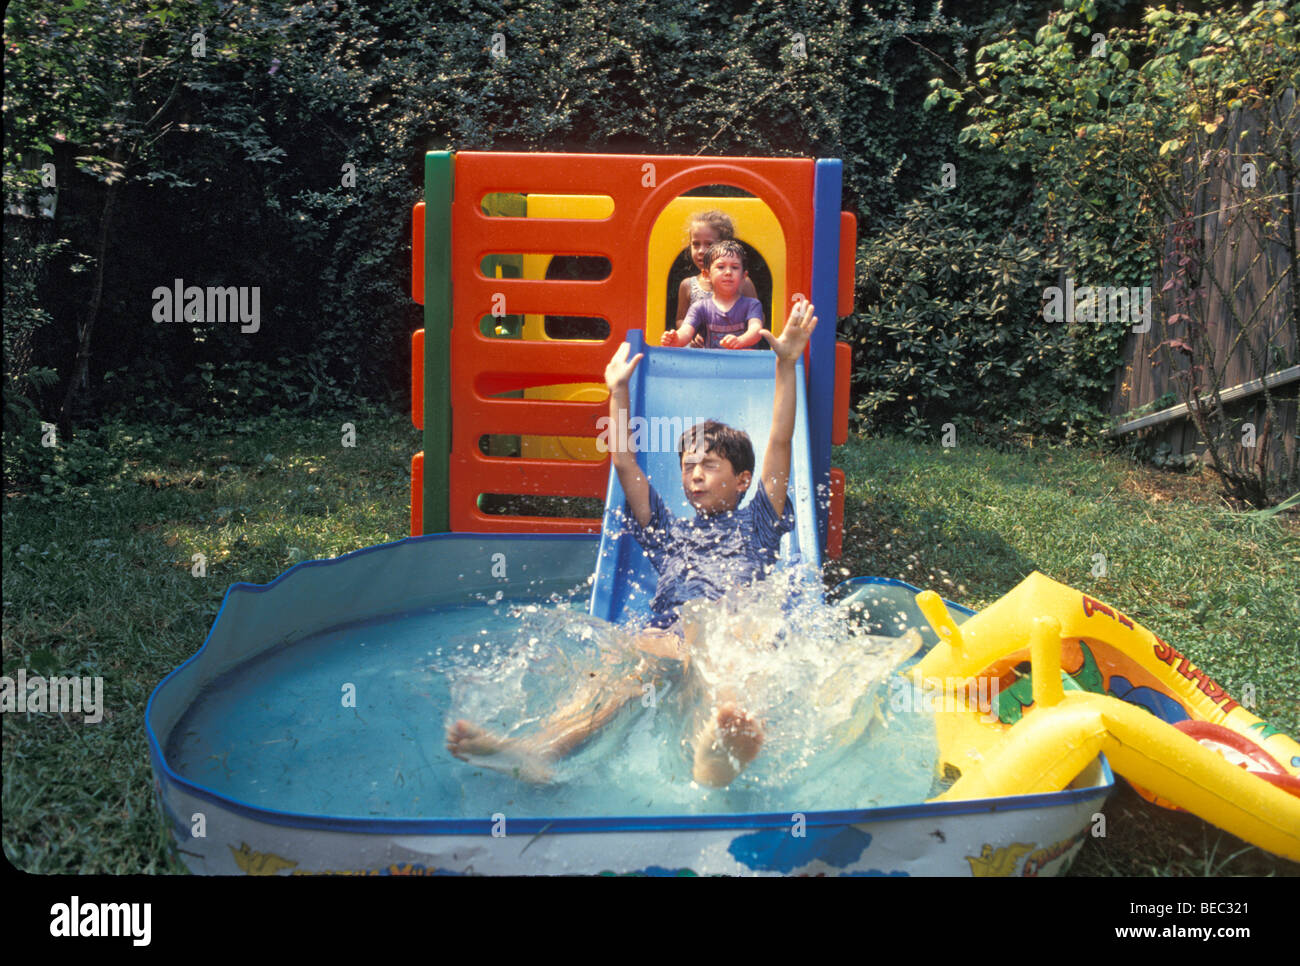 kids have fun on a homemade water slide in the backyard in